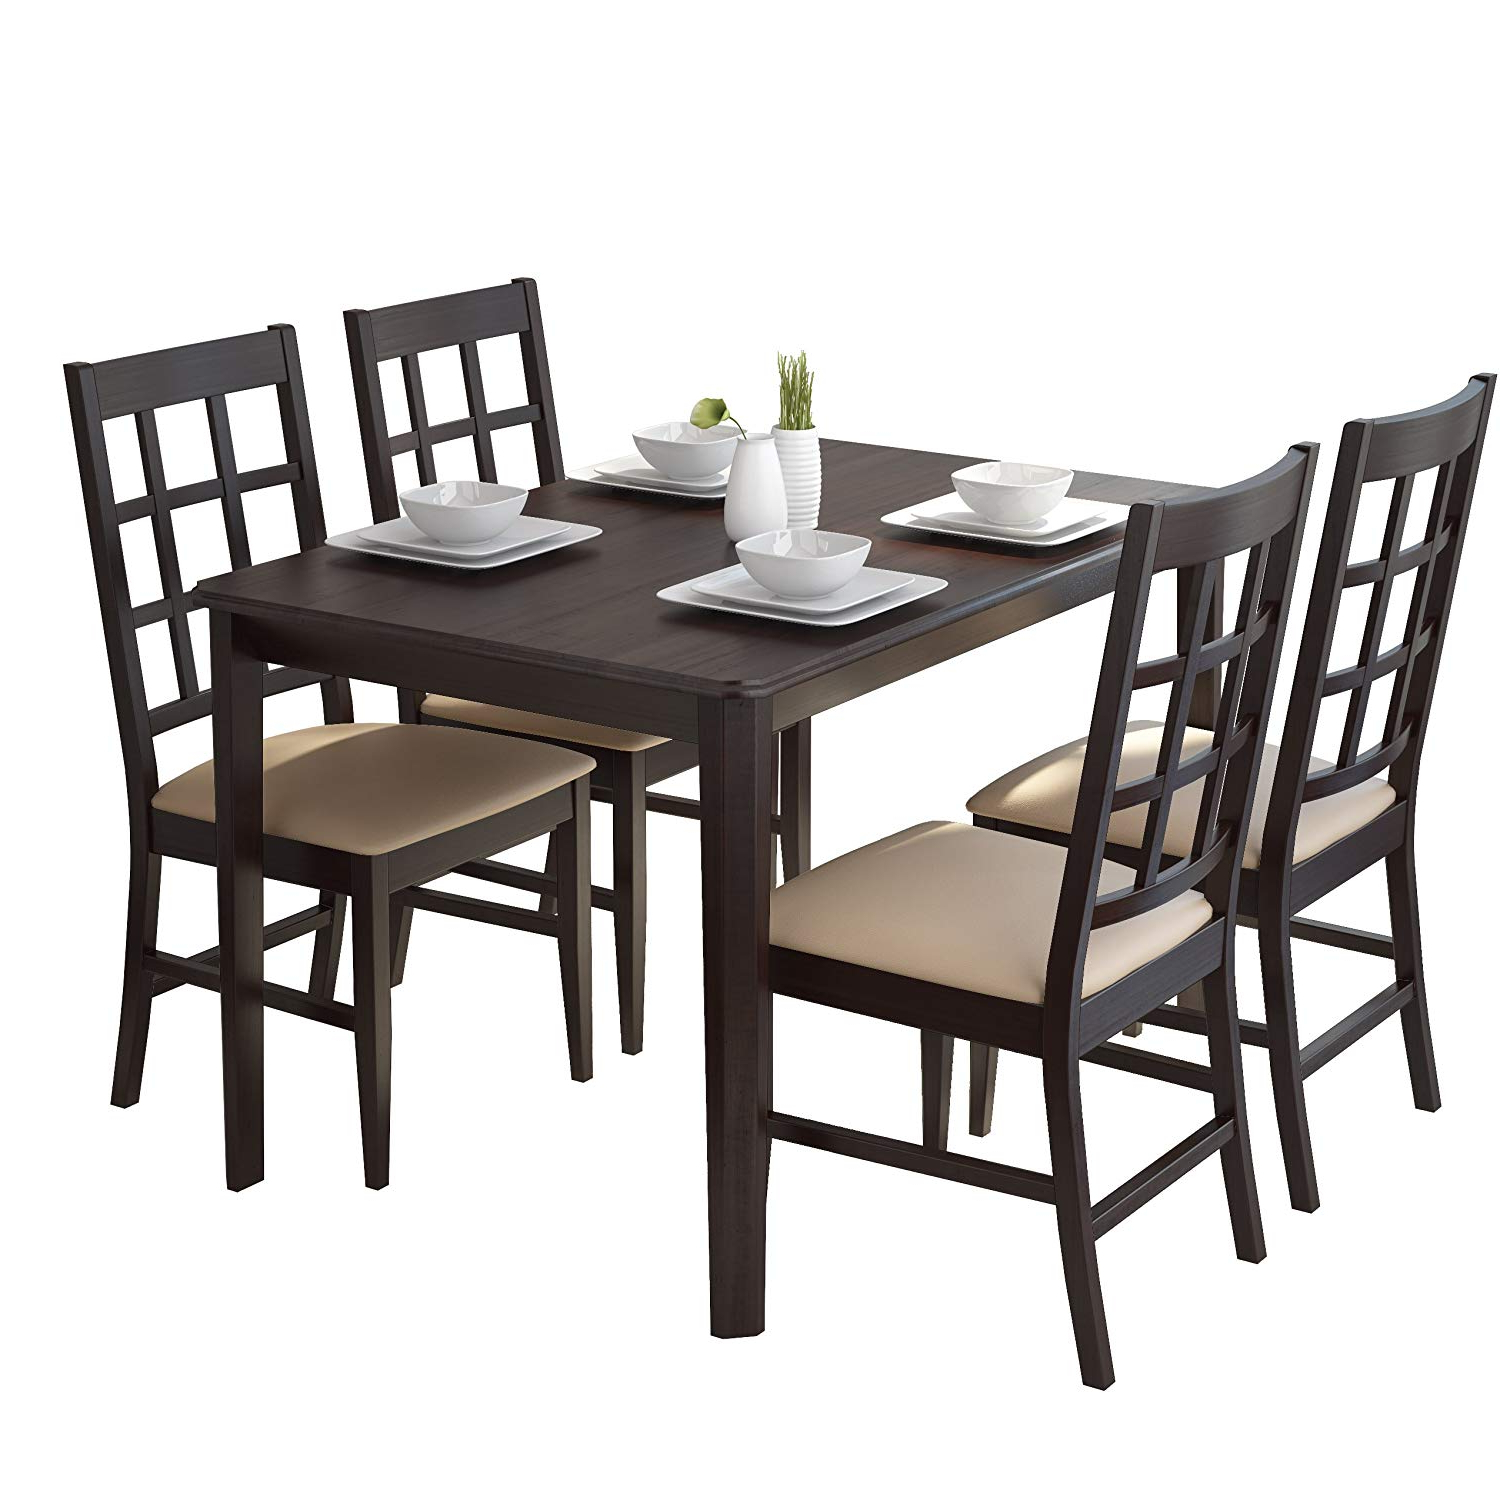 Atwood Transitional Rectangular Dining Tables Pertaining To 2017 Amazon – Corliving Drg 695 Z Atwood Dining Set, Brown (View 5 of 30)